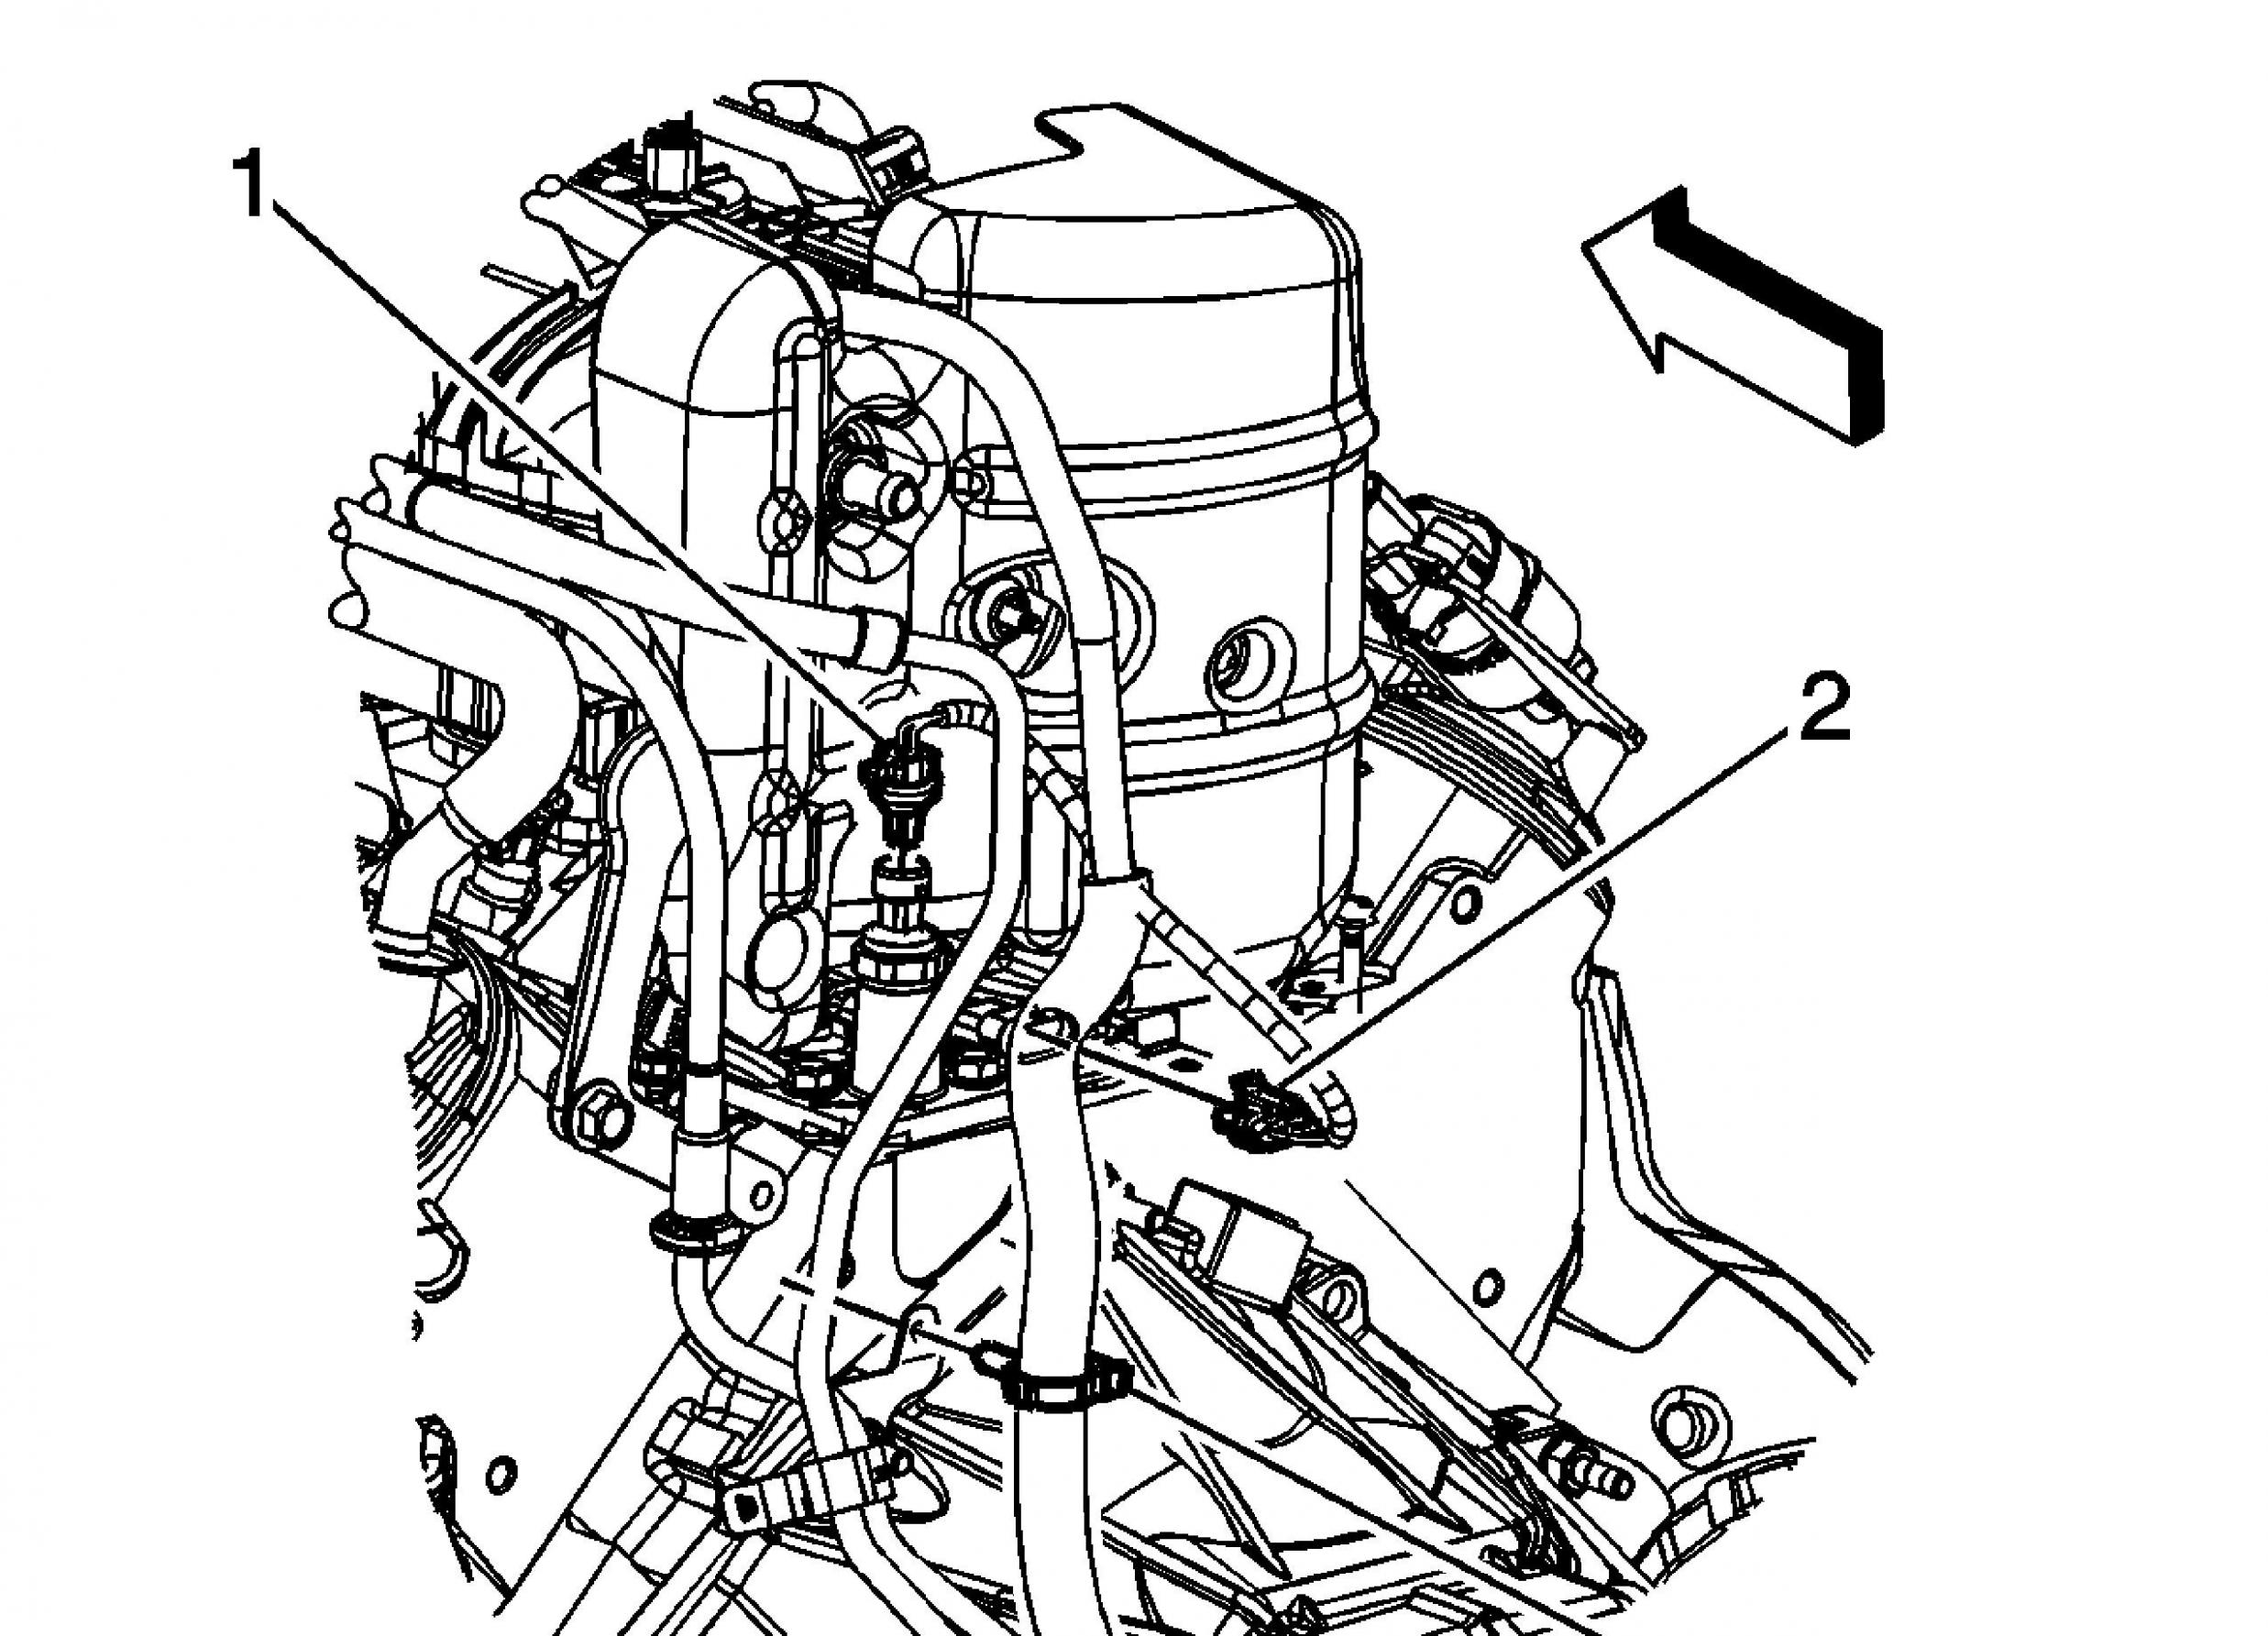 Chevy Aveo Engine Diagram Wiring Diagram For Doorbells Engine Chevy Aveo News On in addition Hvac Control Module Dtc U For Chevy Cruze Transmission Control Module Location further Gmc Sierra Ip Main Fuse Box Map also Buic Lacroso Fuse Box Map in addition Oldsmobile Cutlass Supreme Lgw. on 2010 buick lucerne fuse box wiring diagram